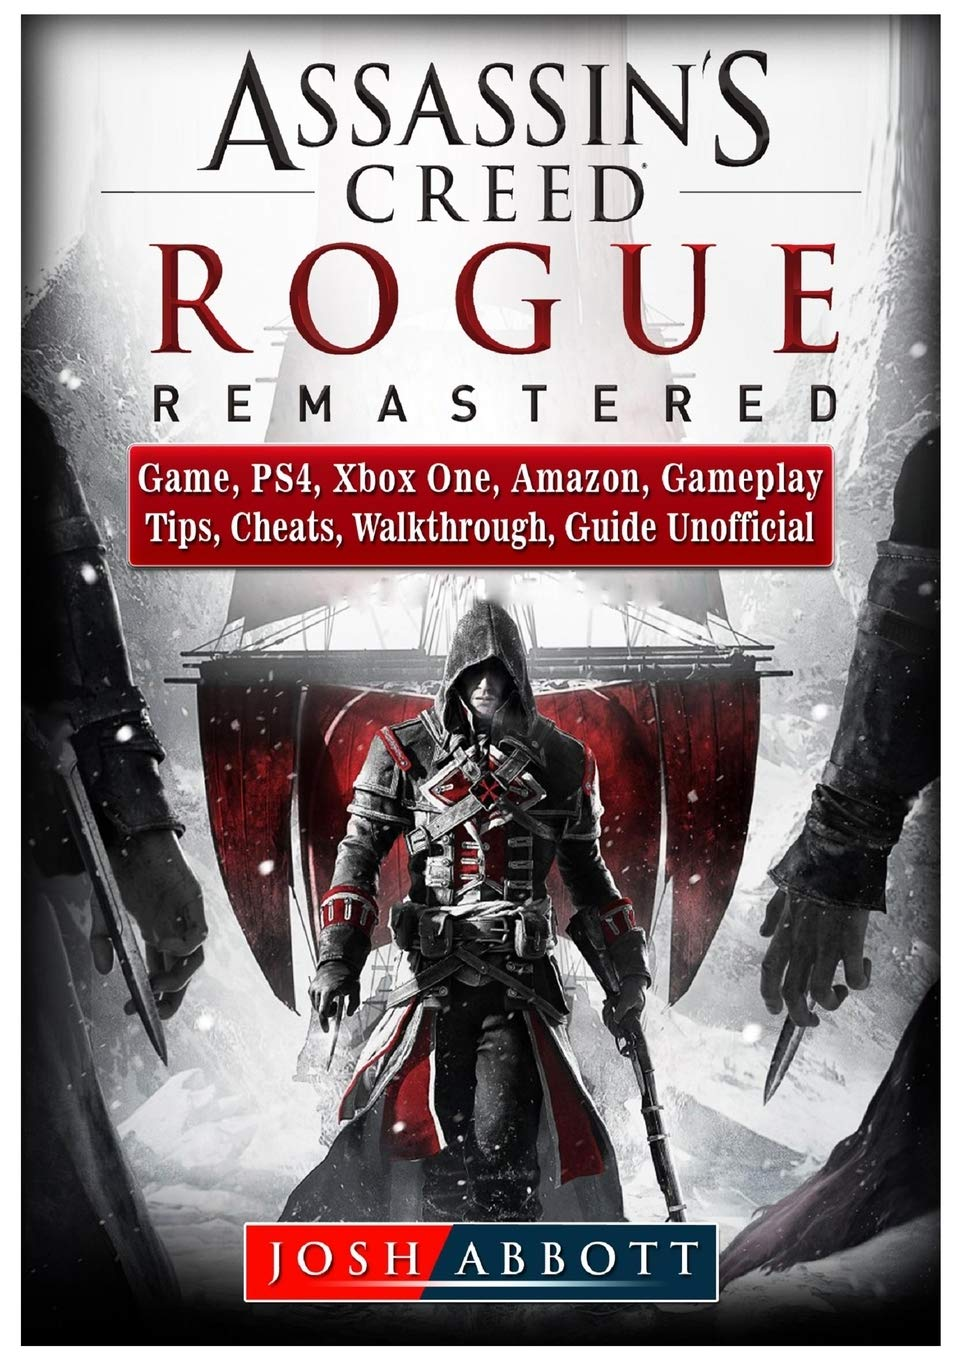 Assassins Creed Rogue Remastered Game, PS4, Xbox One, Amazon ...